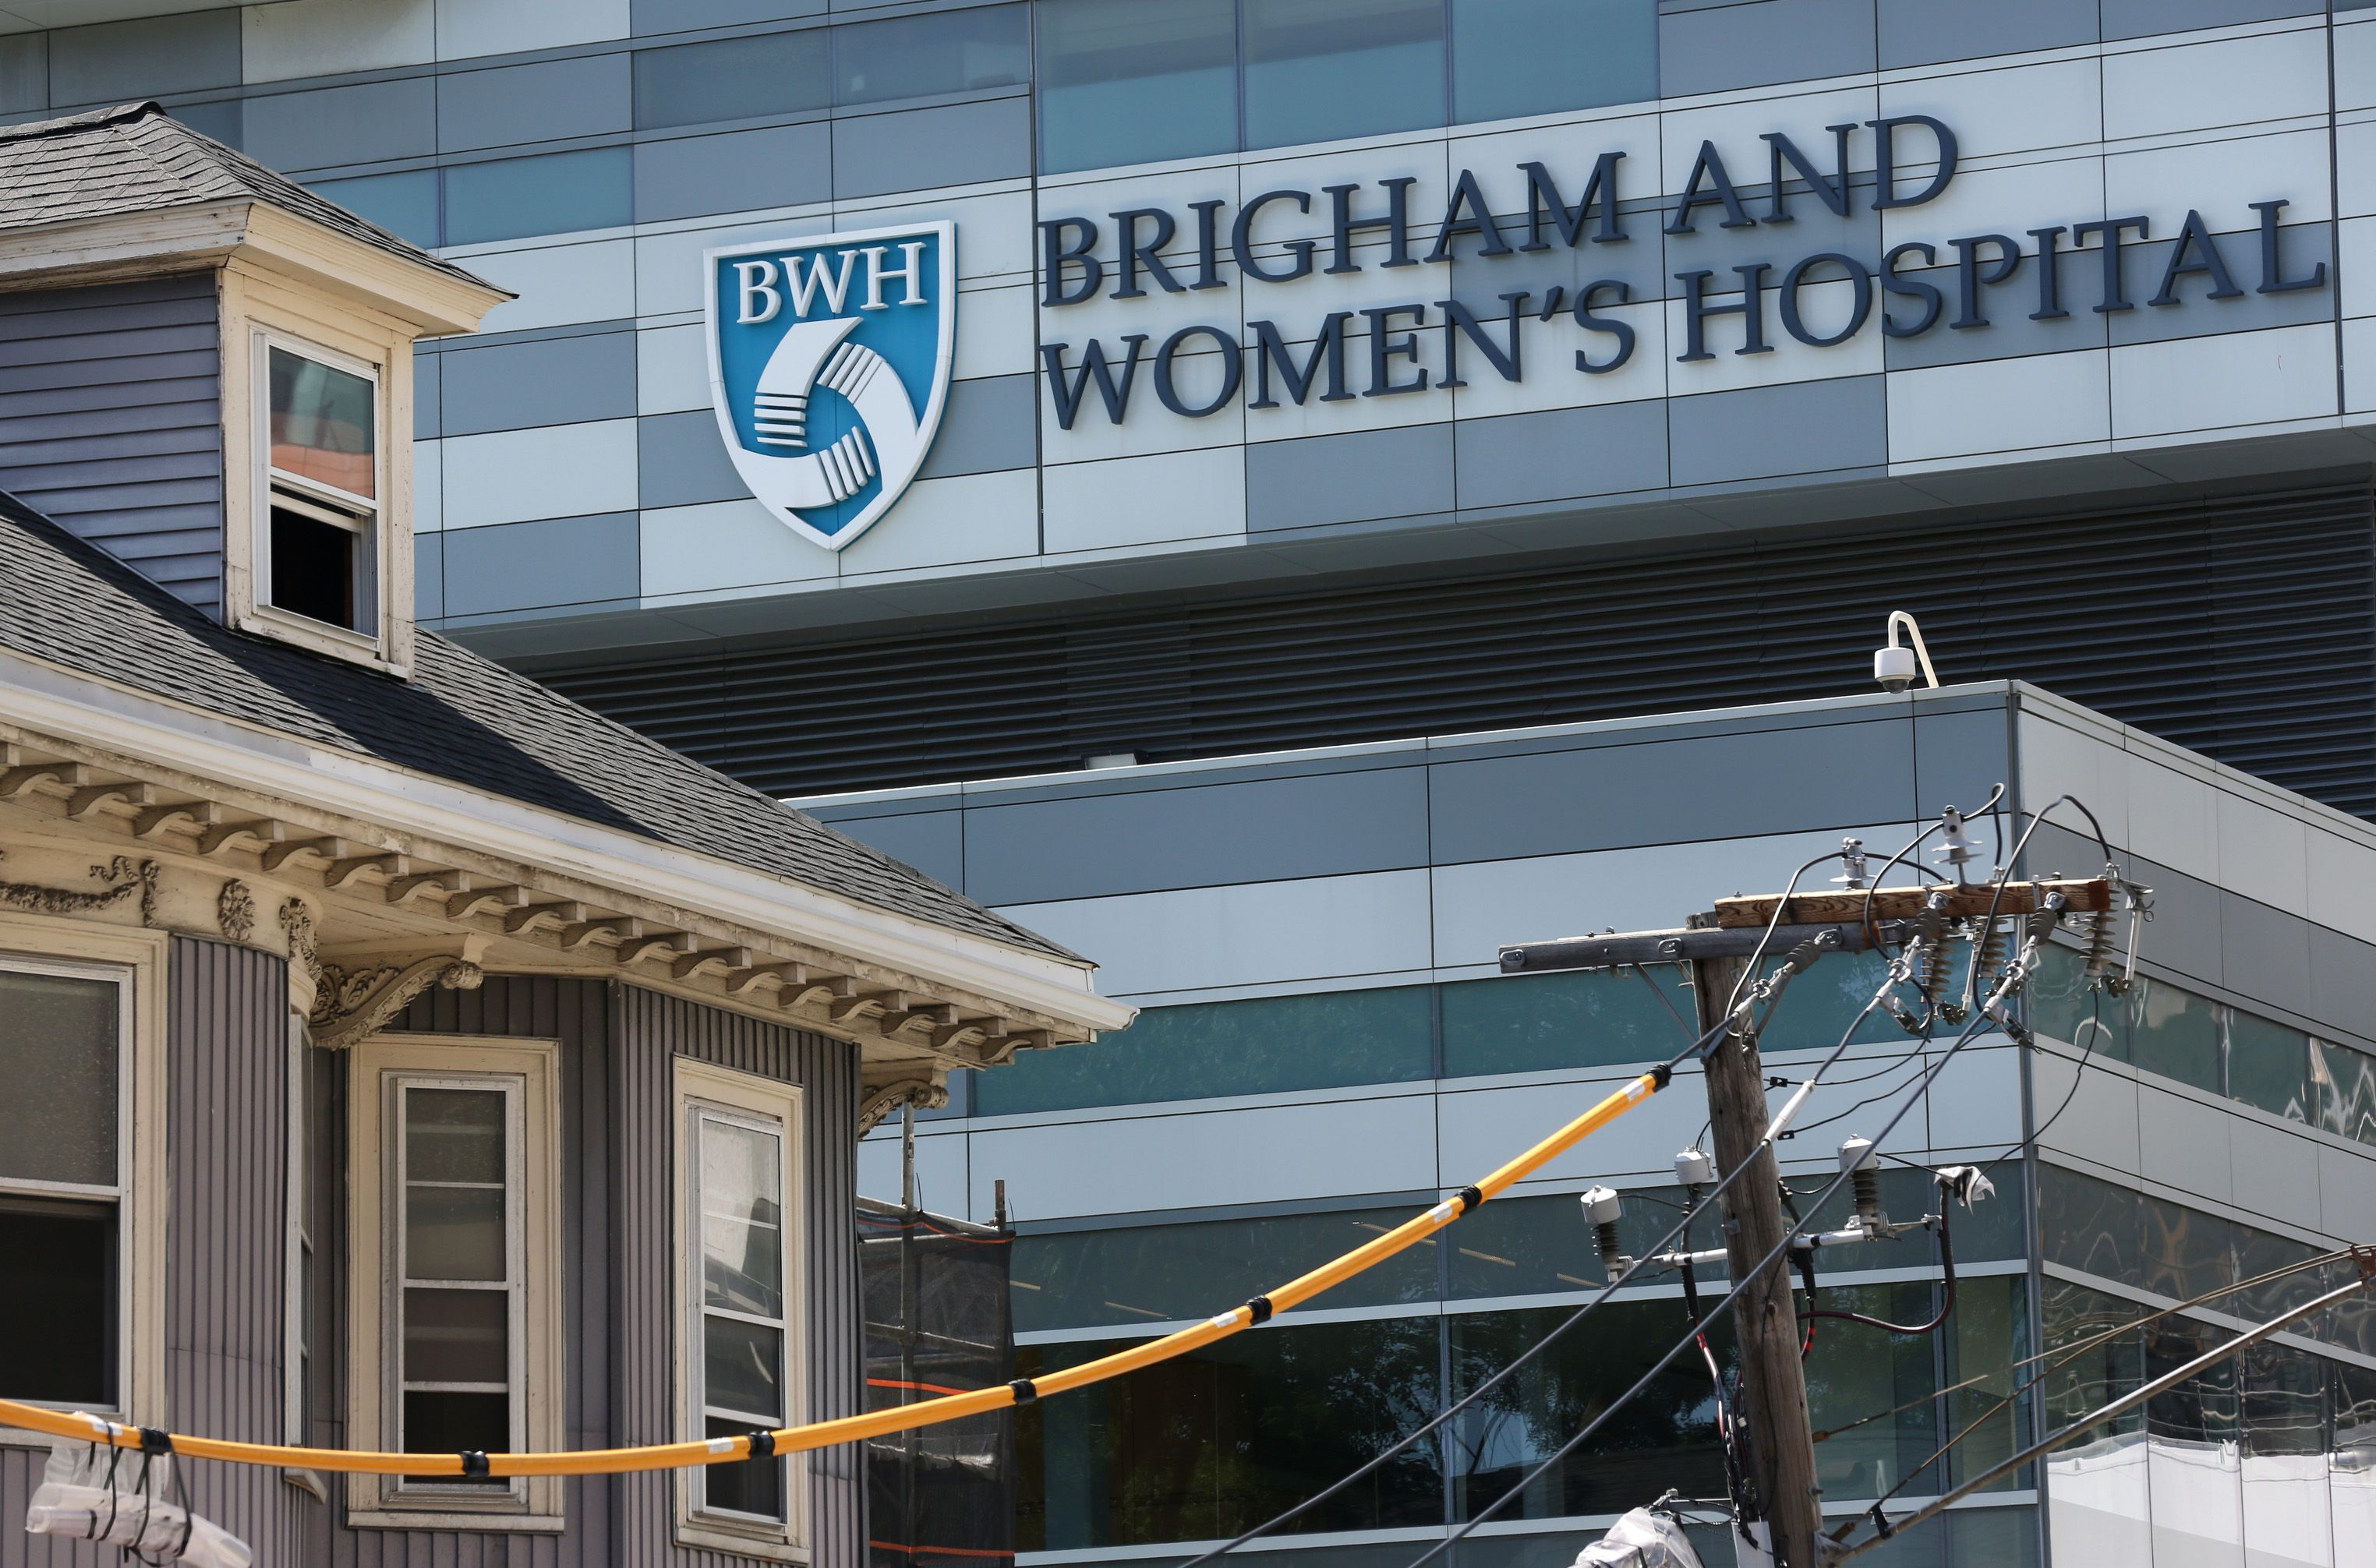 The intruder in the Brigham OR — how did she get there